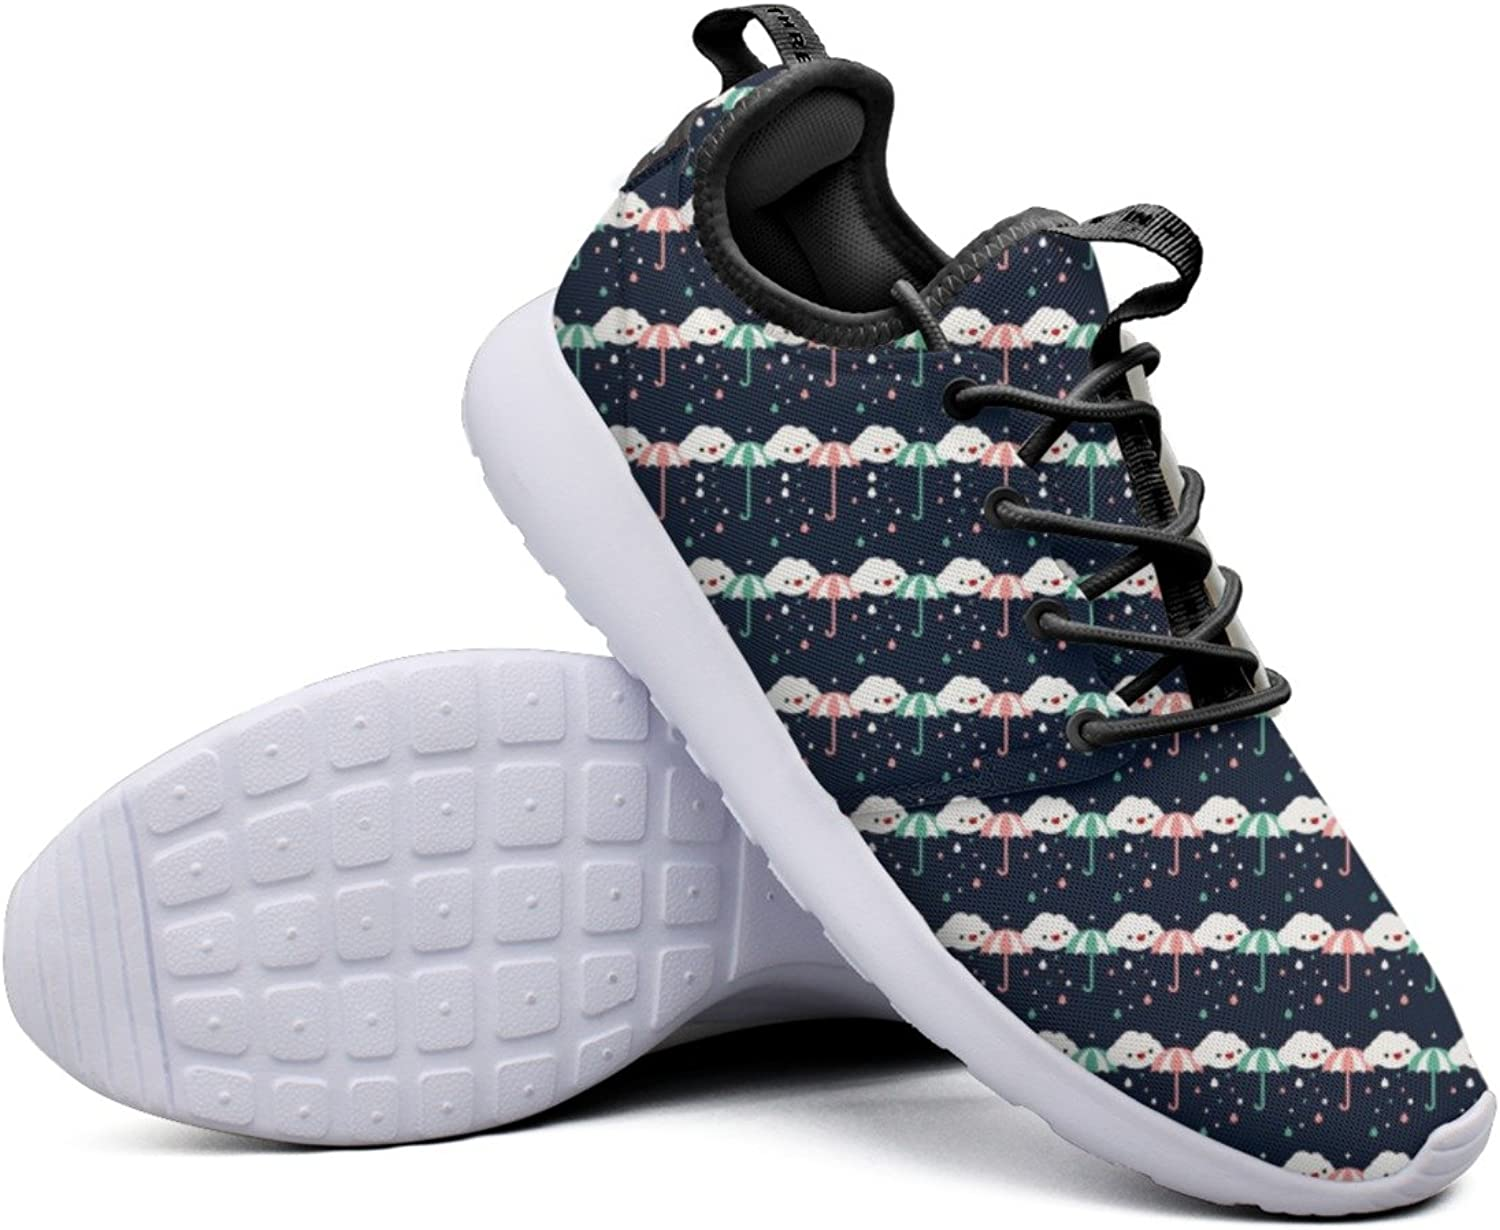 Fashion Sneakers shoes For Women Umbrella Stripe Rainy Day Rain Clouds Rendy Lightweight Breathable Mesh Womens Basketball Sneakers